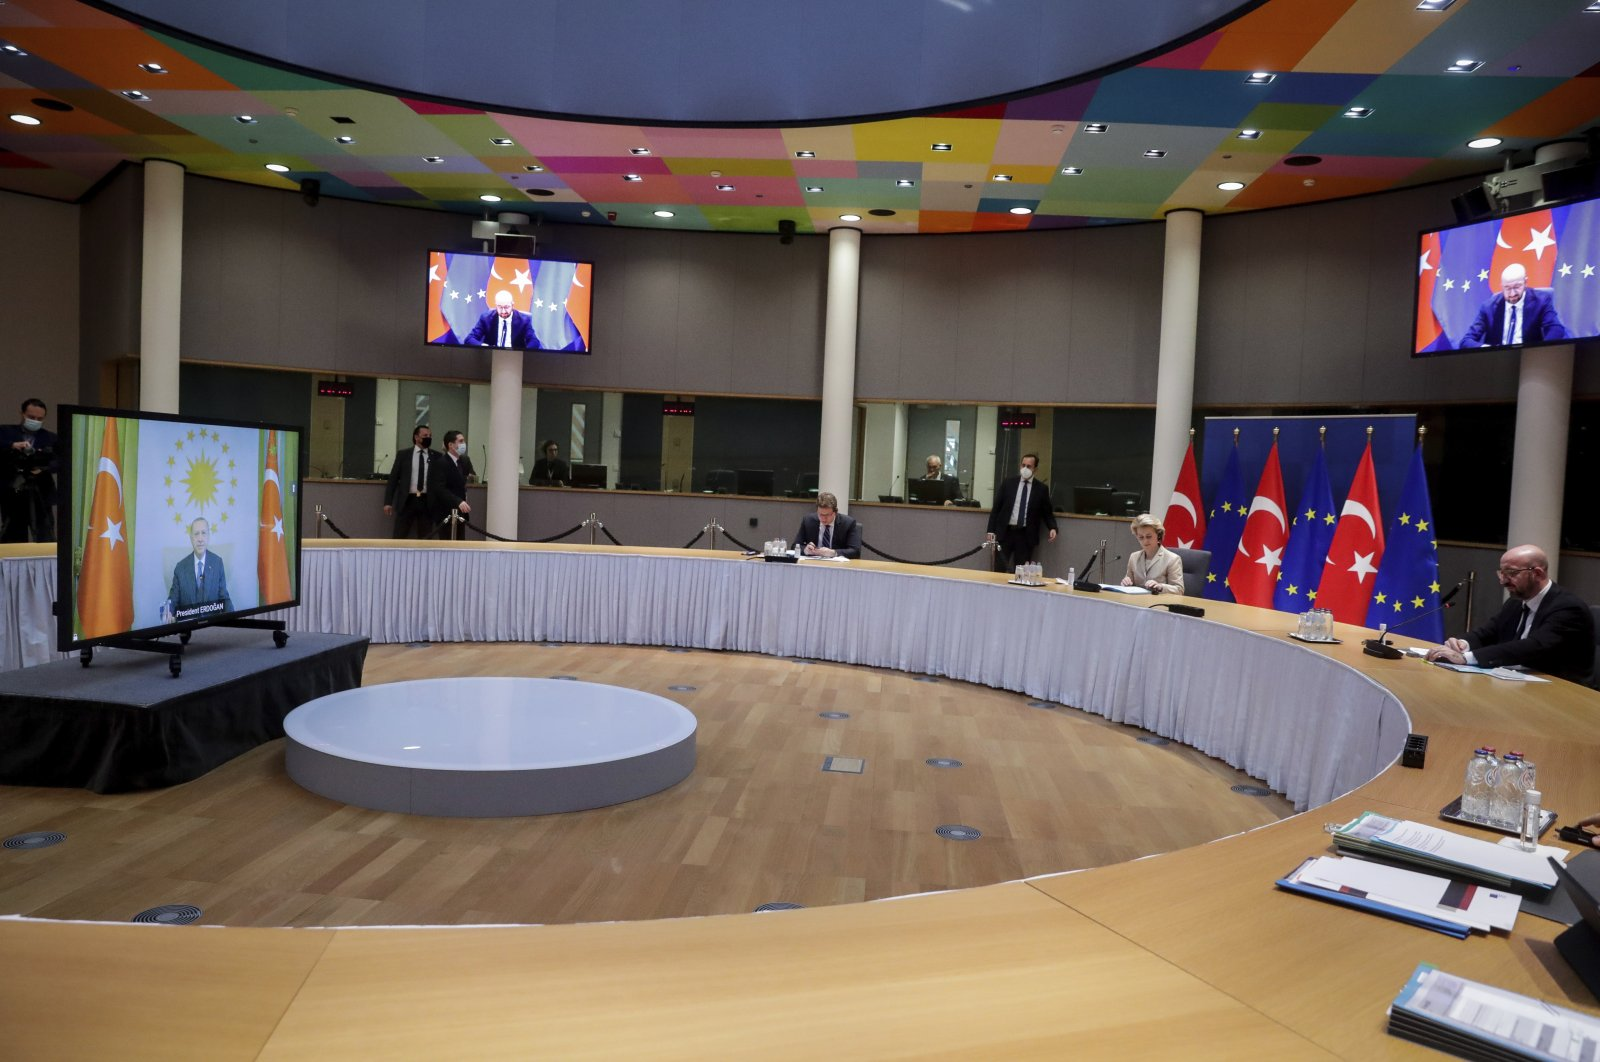 European Commission President Ursula von der Leyen, center, and European Council President Charles Michel participate in a video conference meeting with Turkey's President Recep Tayyip Erdoğan, left on the screen, at the European Council building in Brussels, Friday, March 19, 2021. (AP Photo)